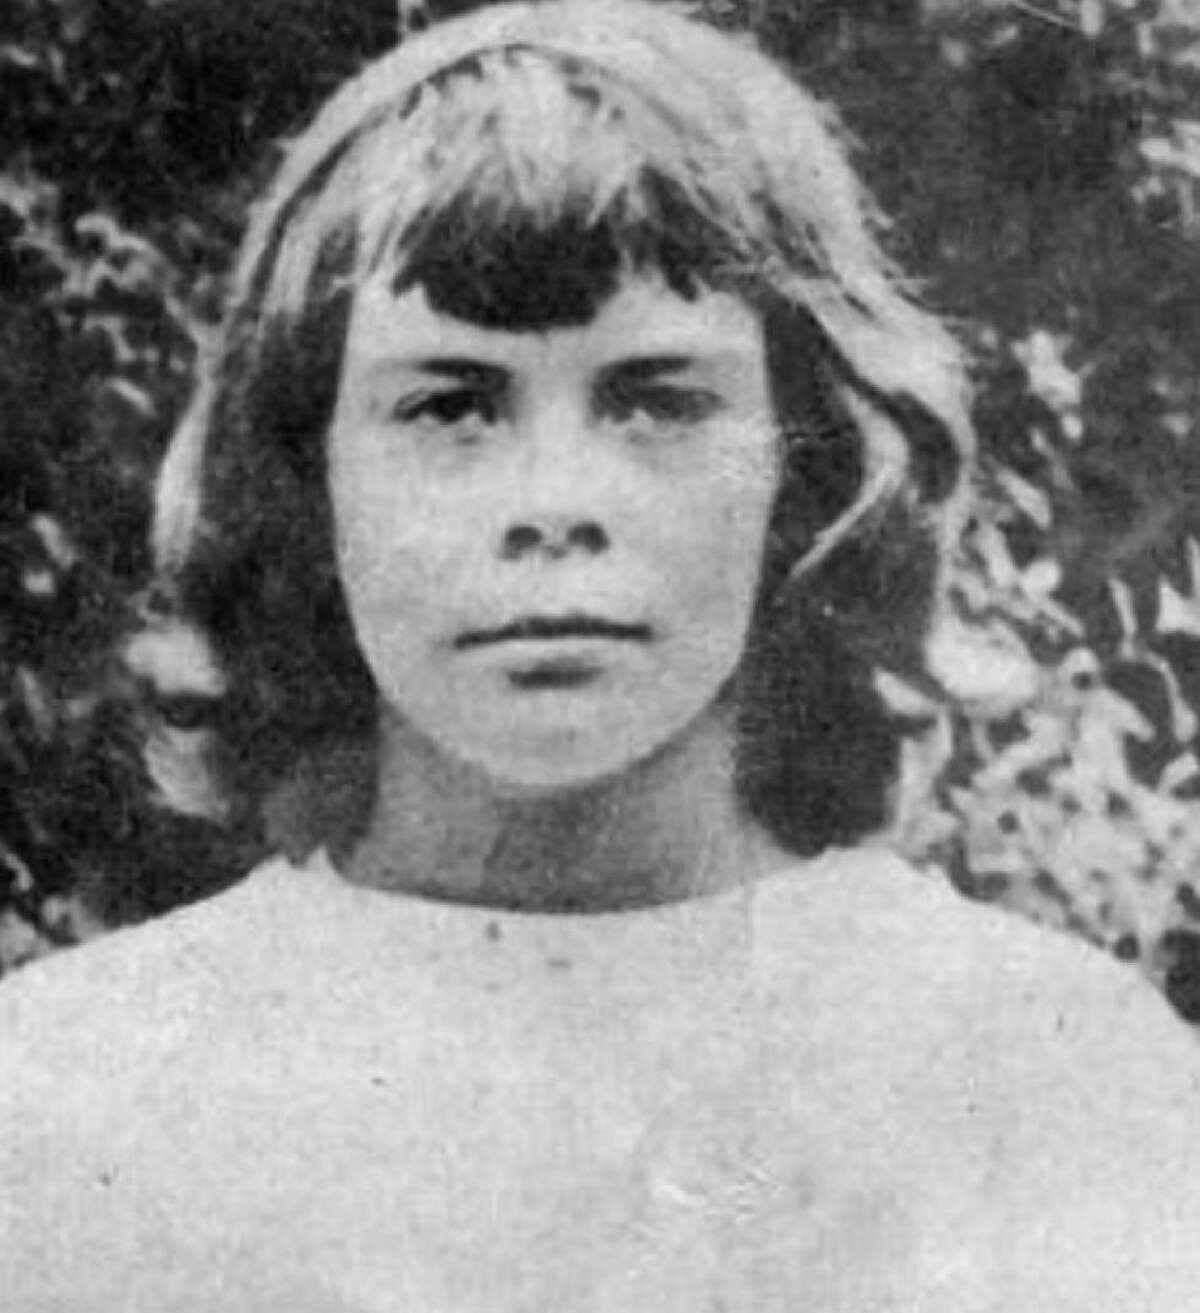 The disappearance of Connie Smith in 1956 remains unsolved to this day. Above, a detail of a photo was shown of 10-year-old Connie Smith, who disappeared July 16, 1952, and was not seen since. Smith had been a summer camper at Camp Sloane at 124 Indian Mountain Road in Lakeville. A former Wyoming Governor's granddaughter, Smith was last seen at the intersection of Route 44 and Belgo Road after she decided to walk to Lakeville from the camp.